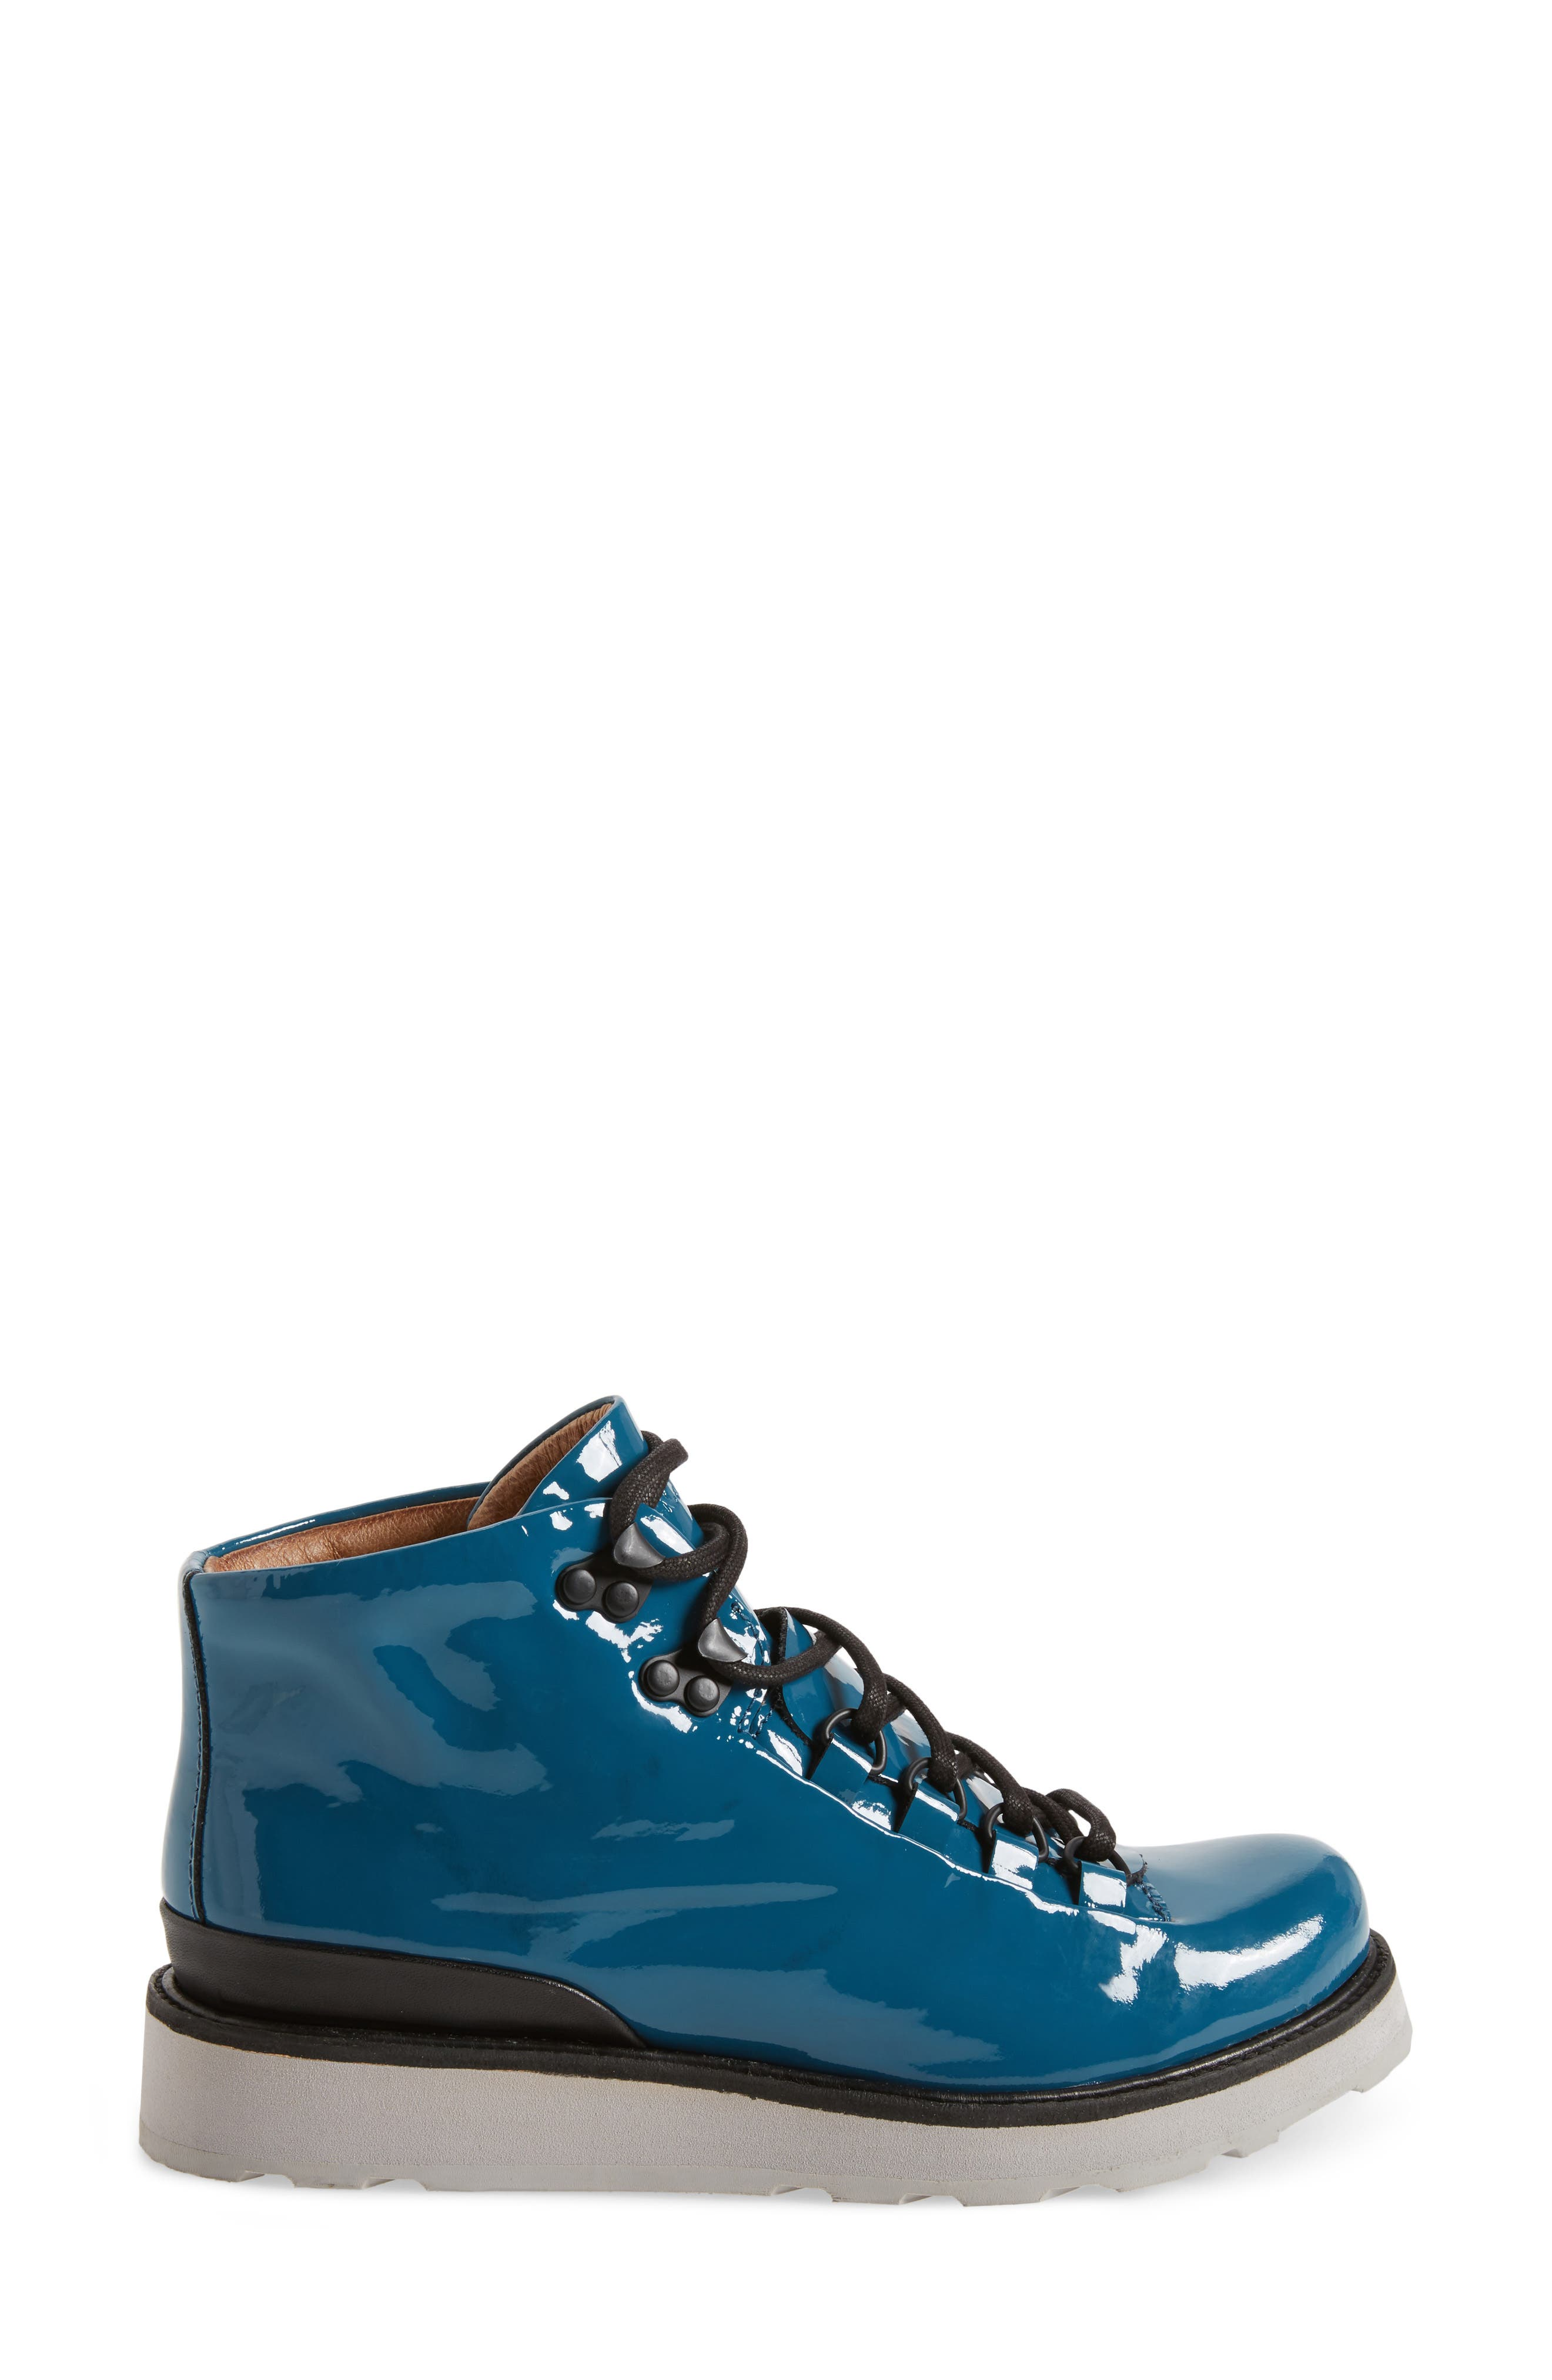 'MW76' Water Resistant Boot,                             Alternate thumbnail 3, color,                             441